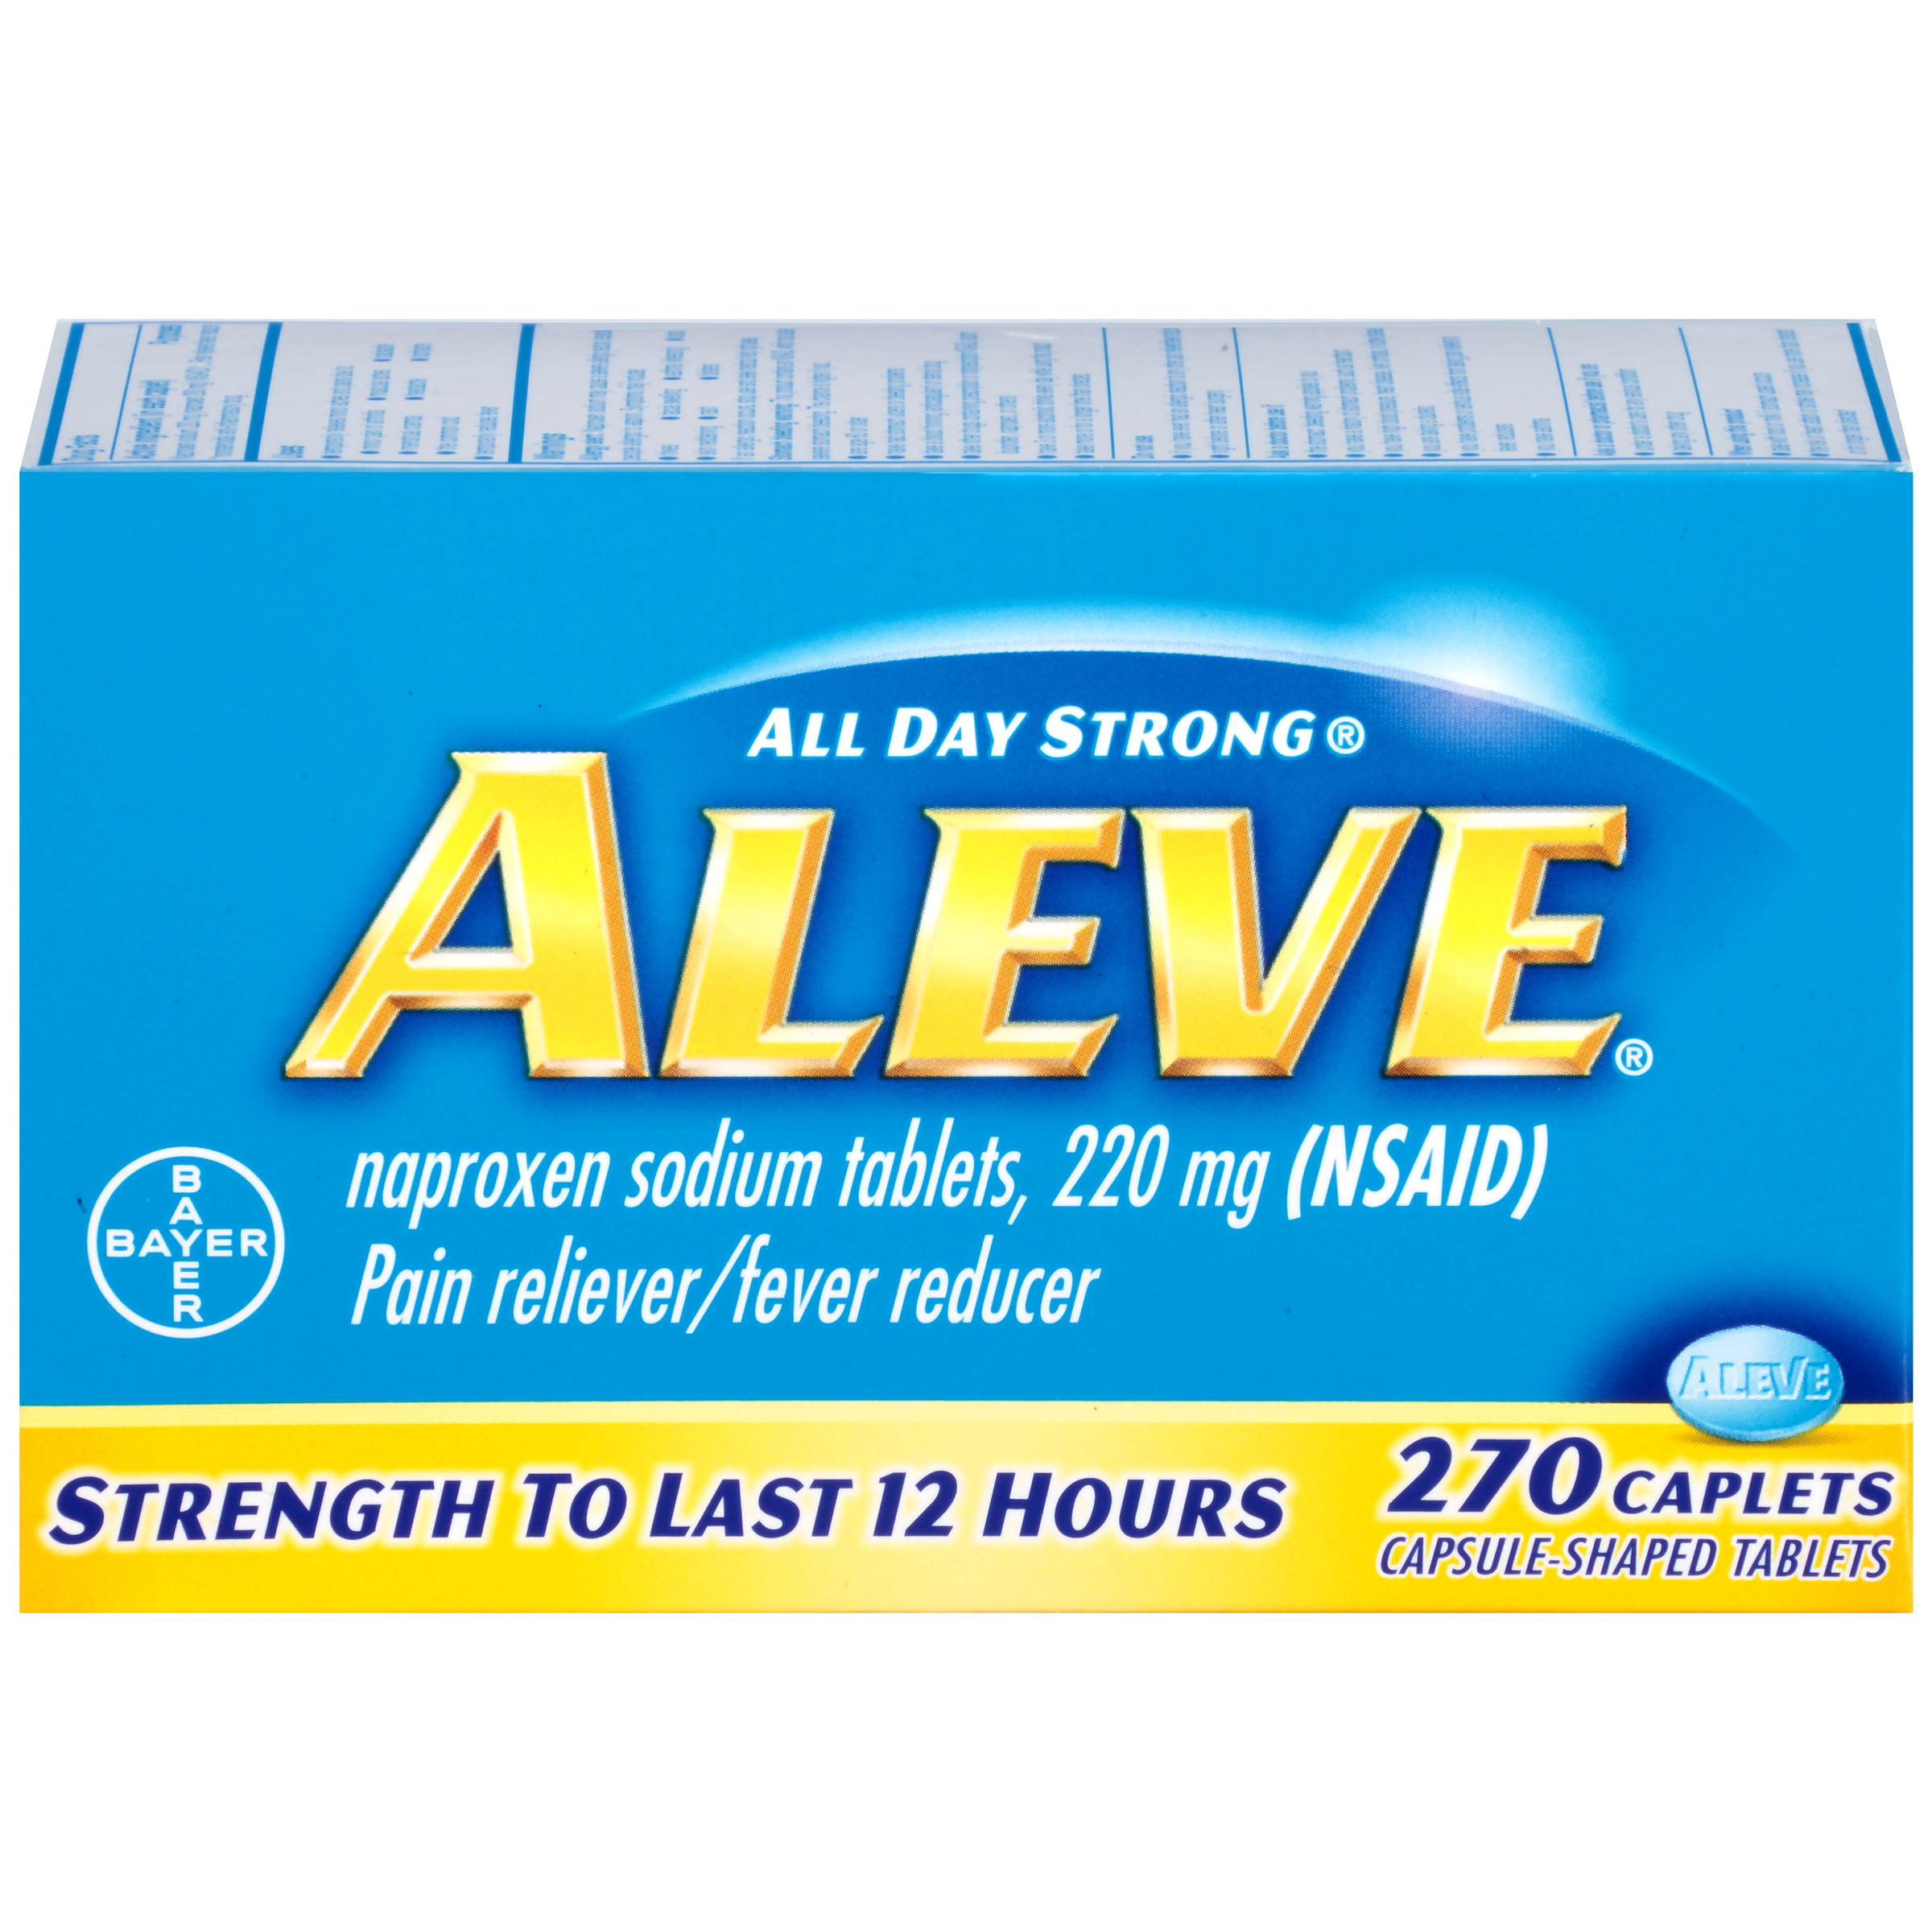 Aleve Pain Reliever/Fever Reducer Naproxen Sodium Caplets, 220 mg, 270 Ct